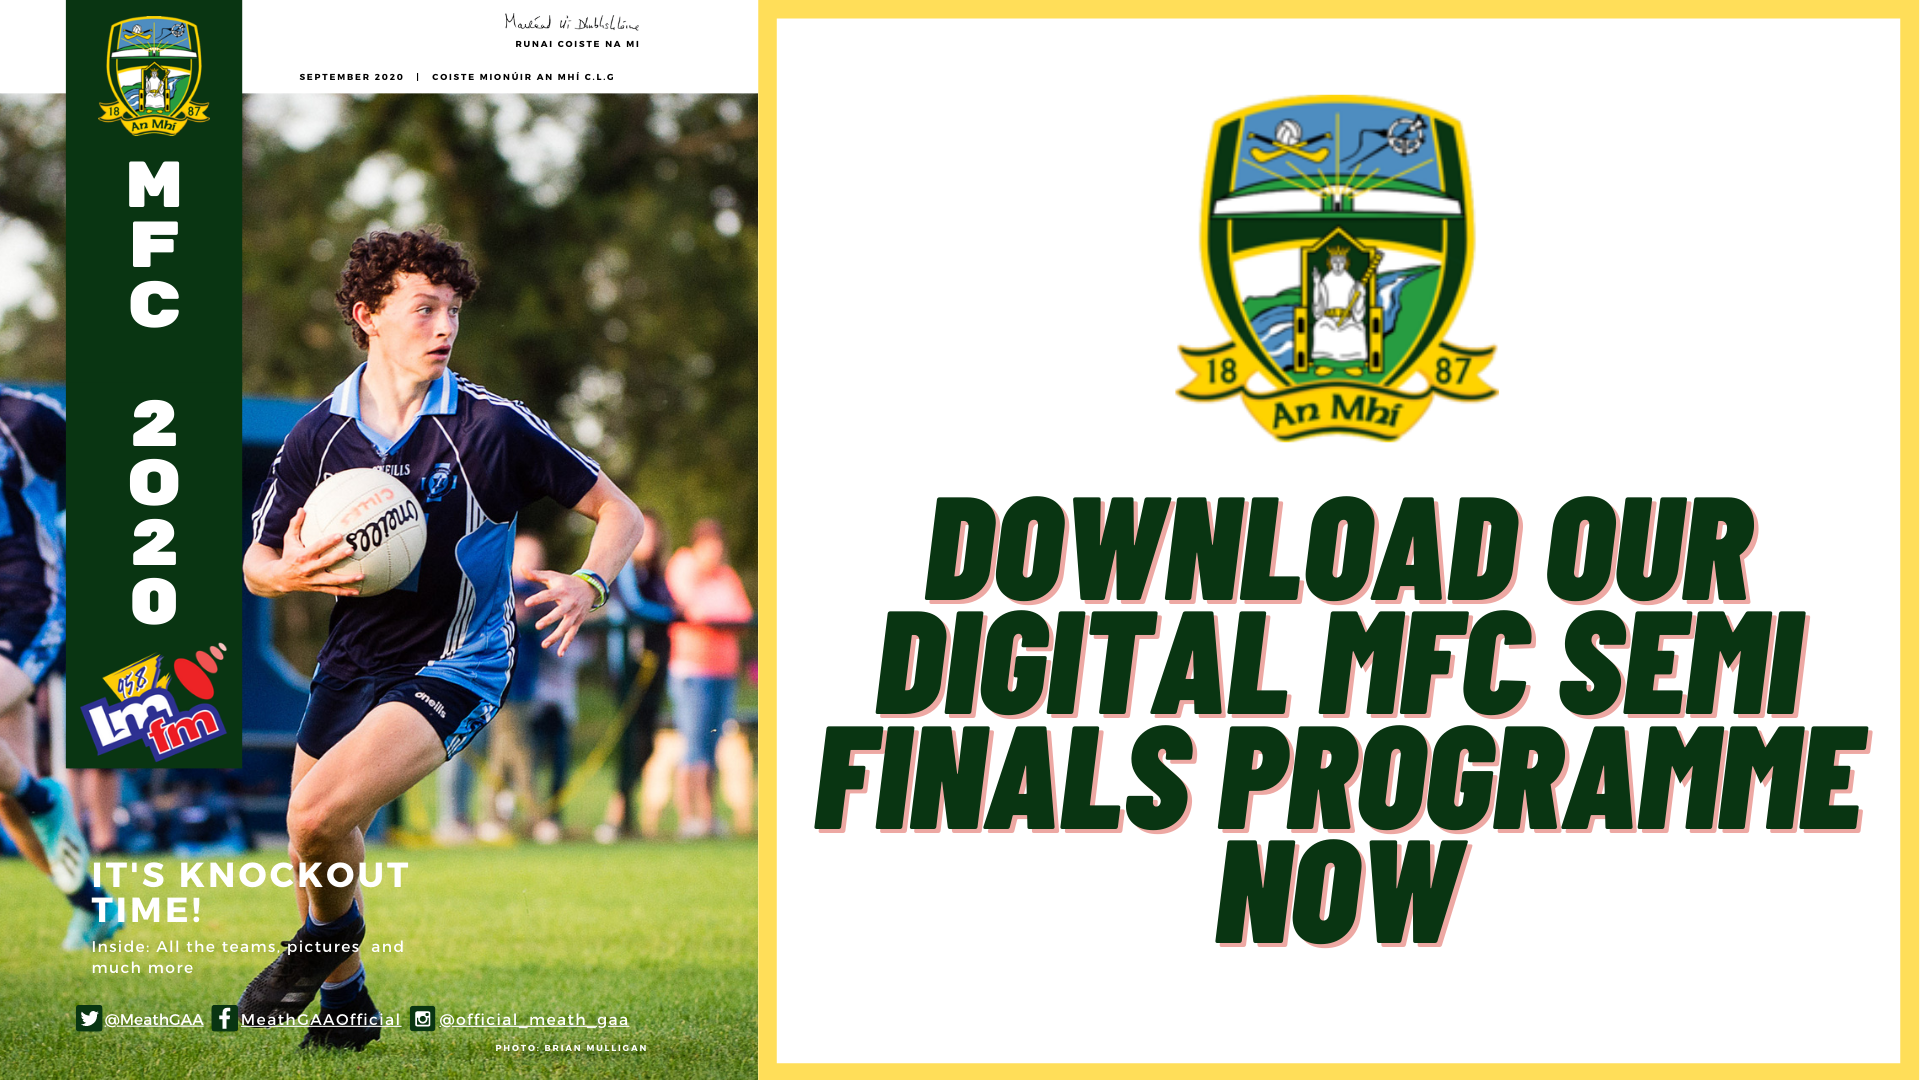 Digital programme for MFC semi finals